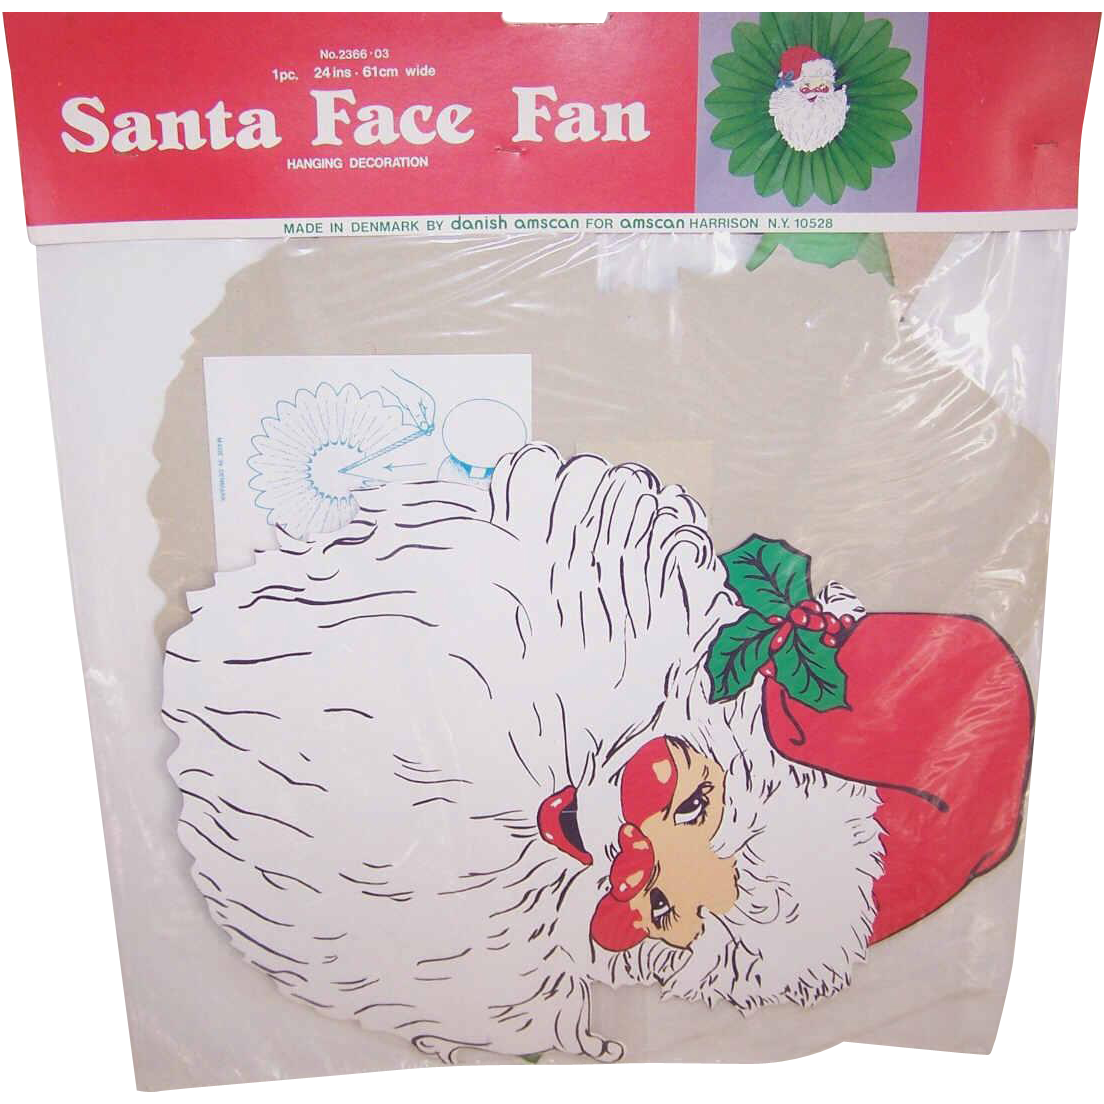 C.1981 Santa Face Honeycomb Fan By Danish Amscan - Mint in Package!